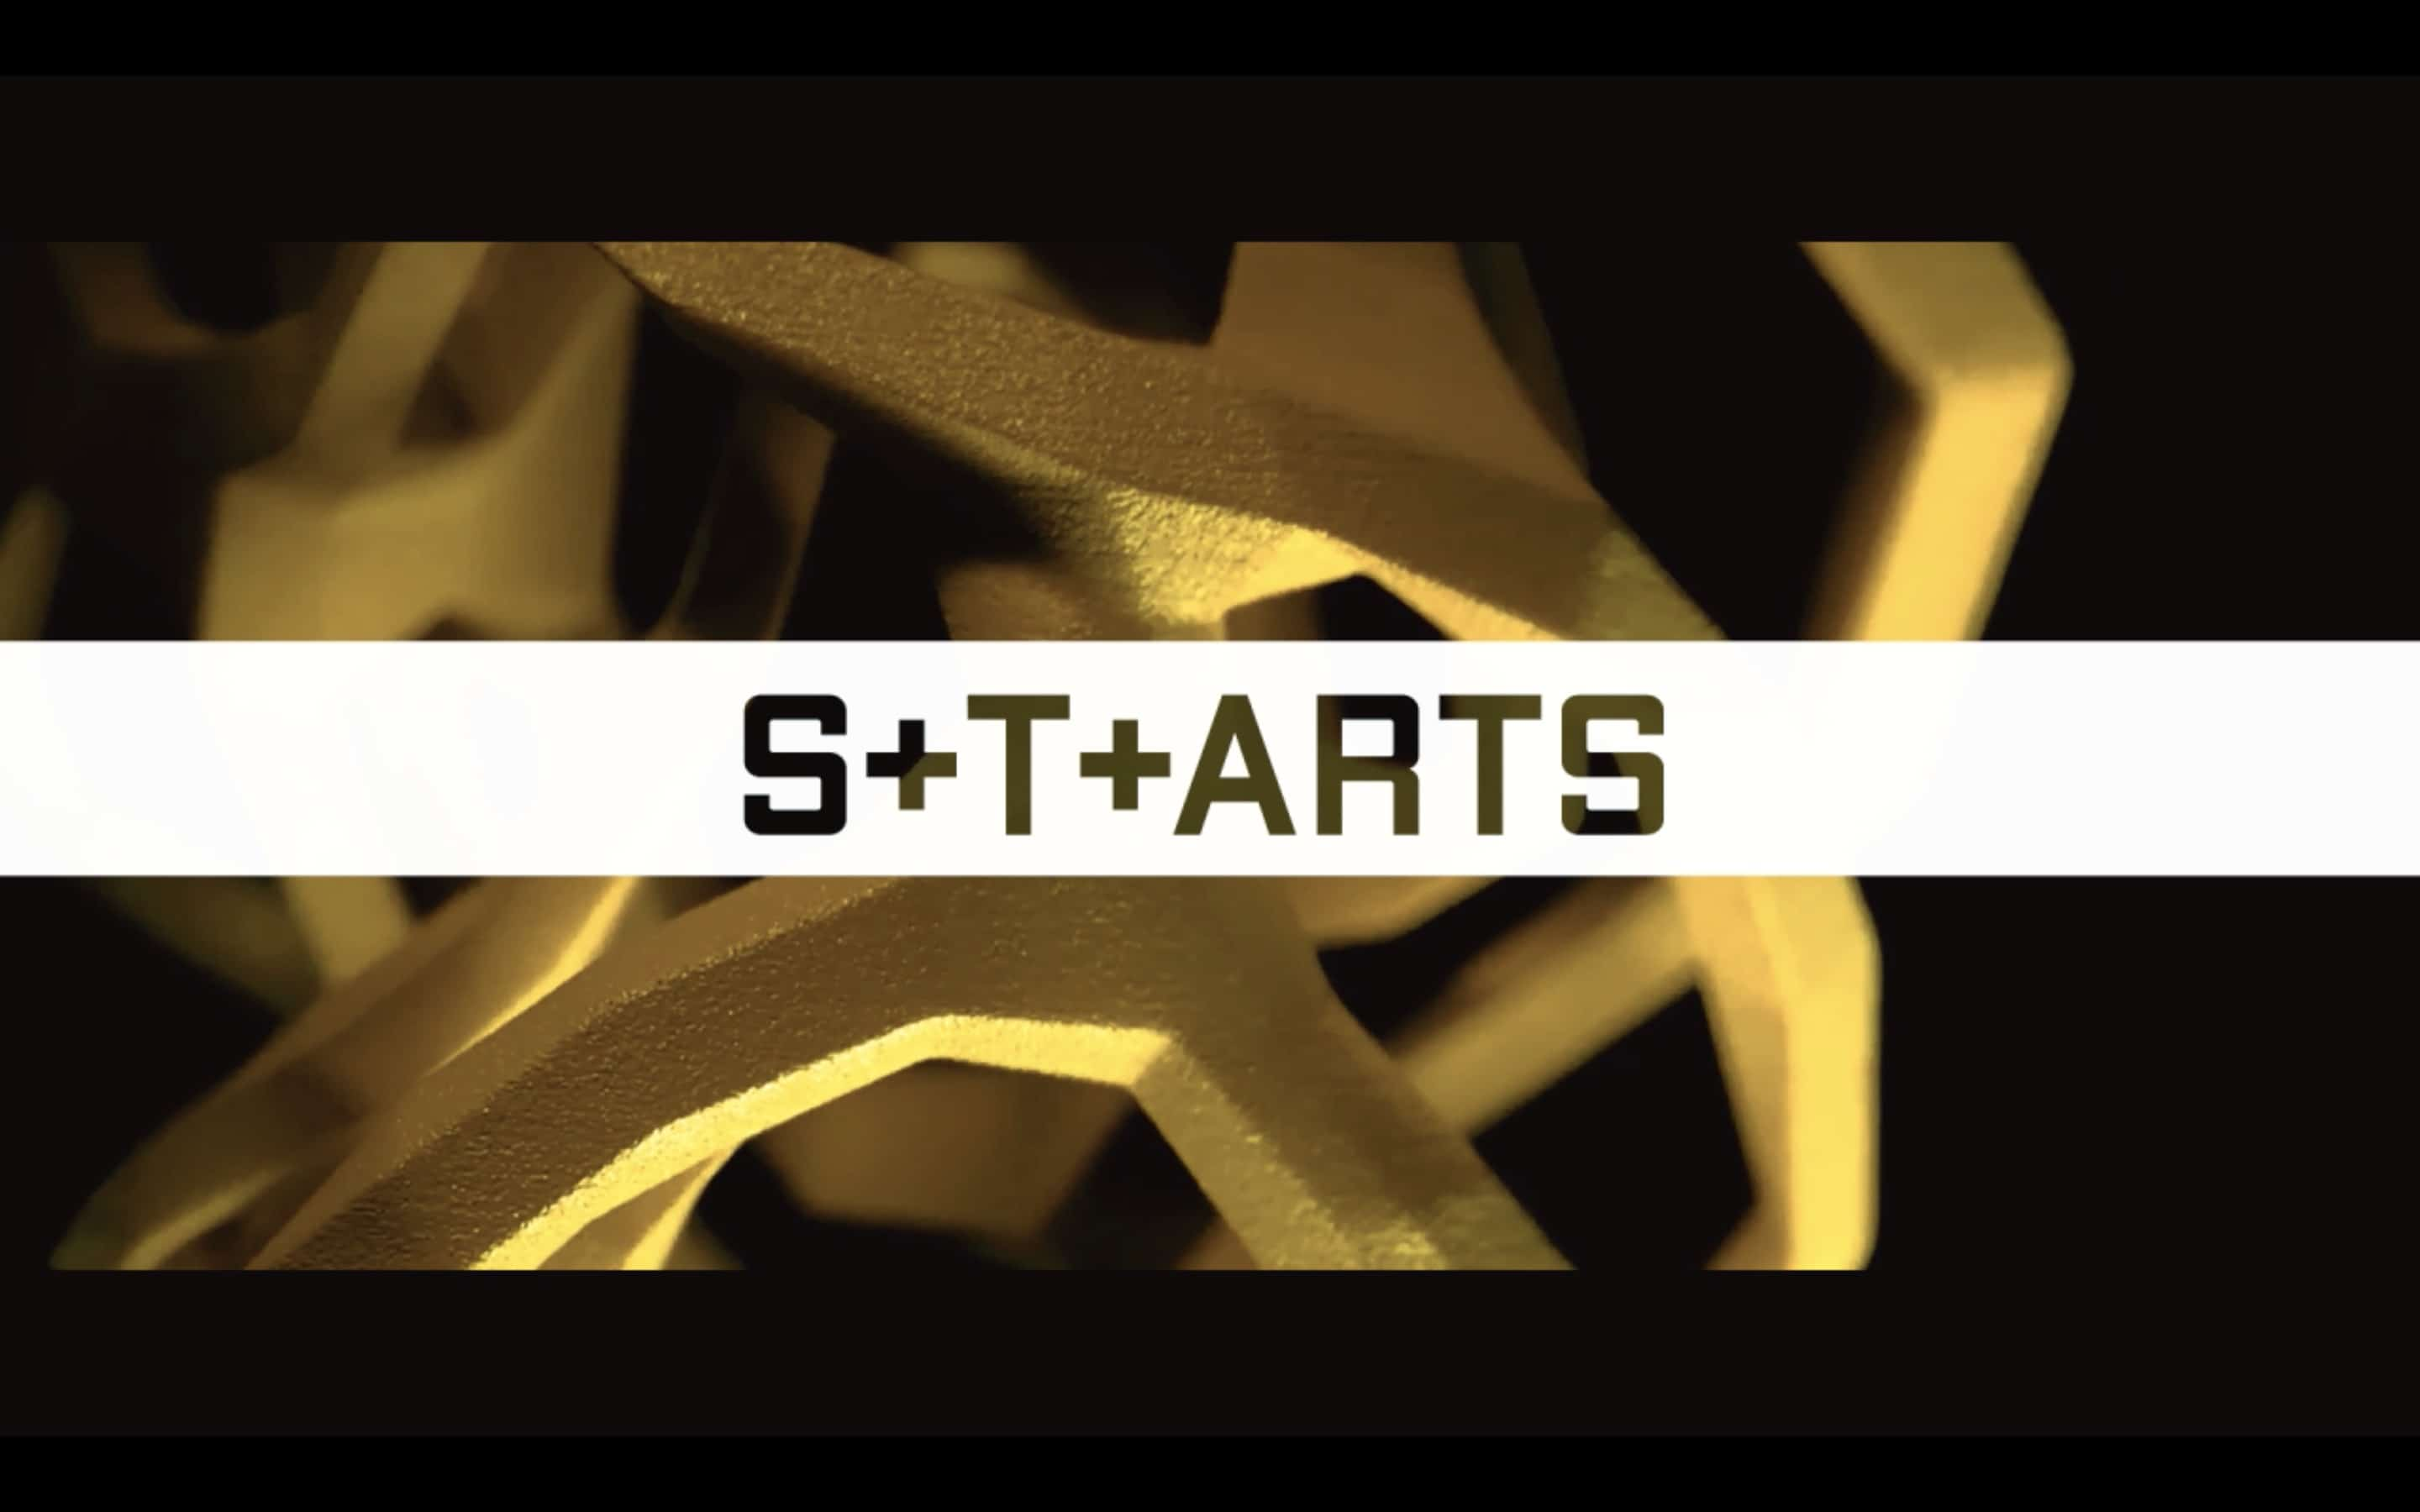 ST-ARTS & the Startup Ecosystem: Marketing for Startups